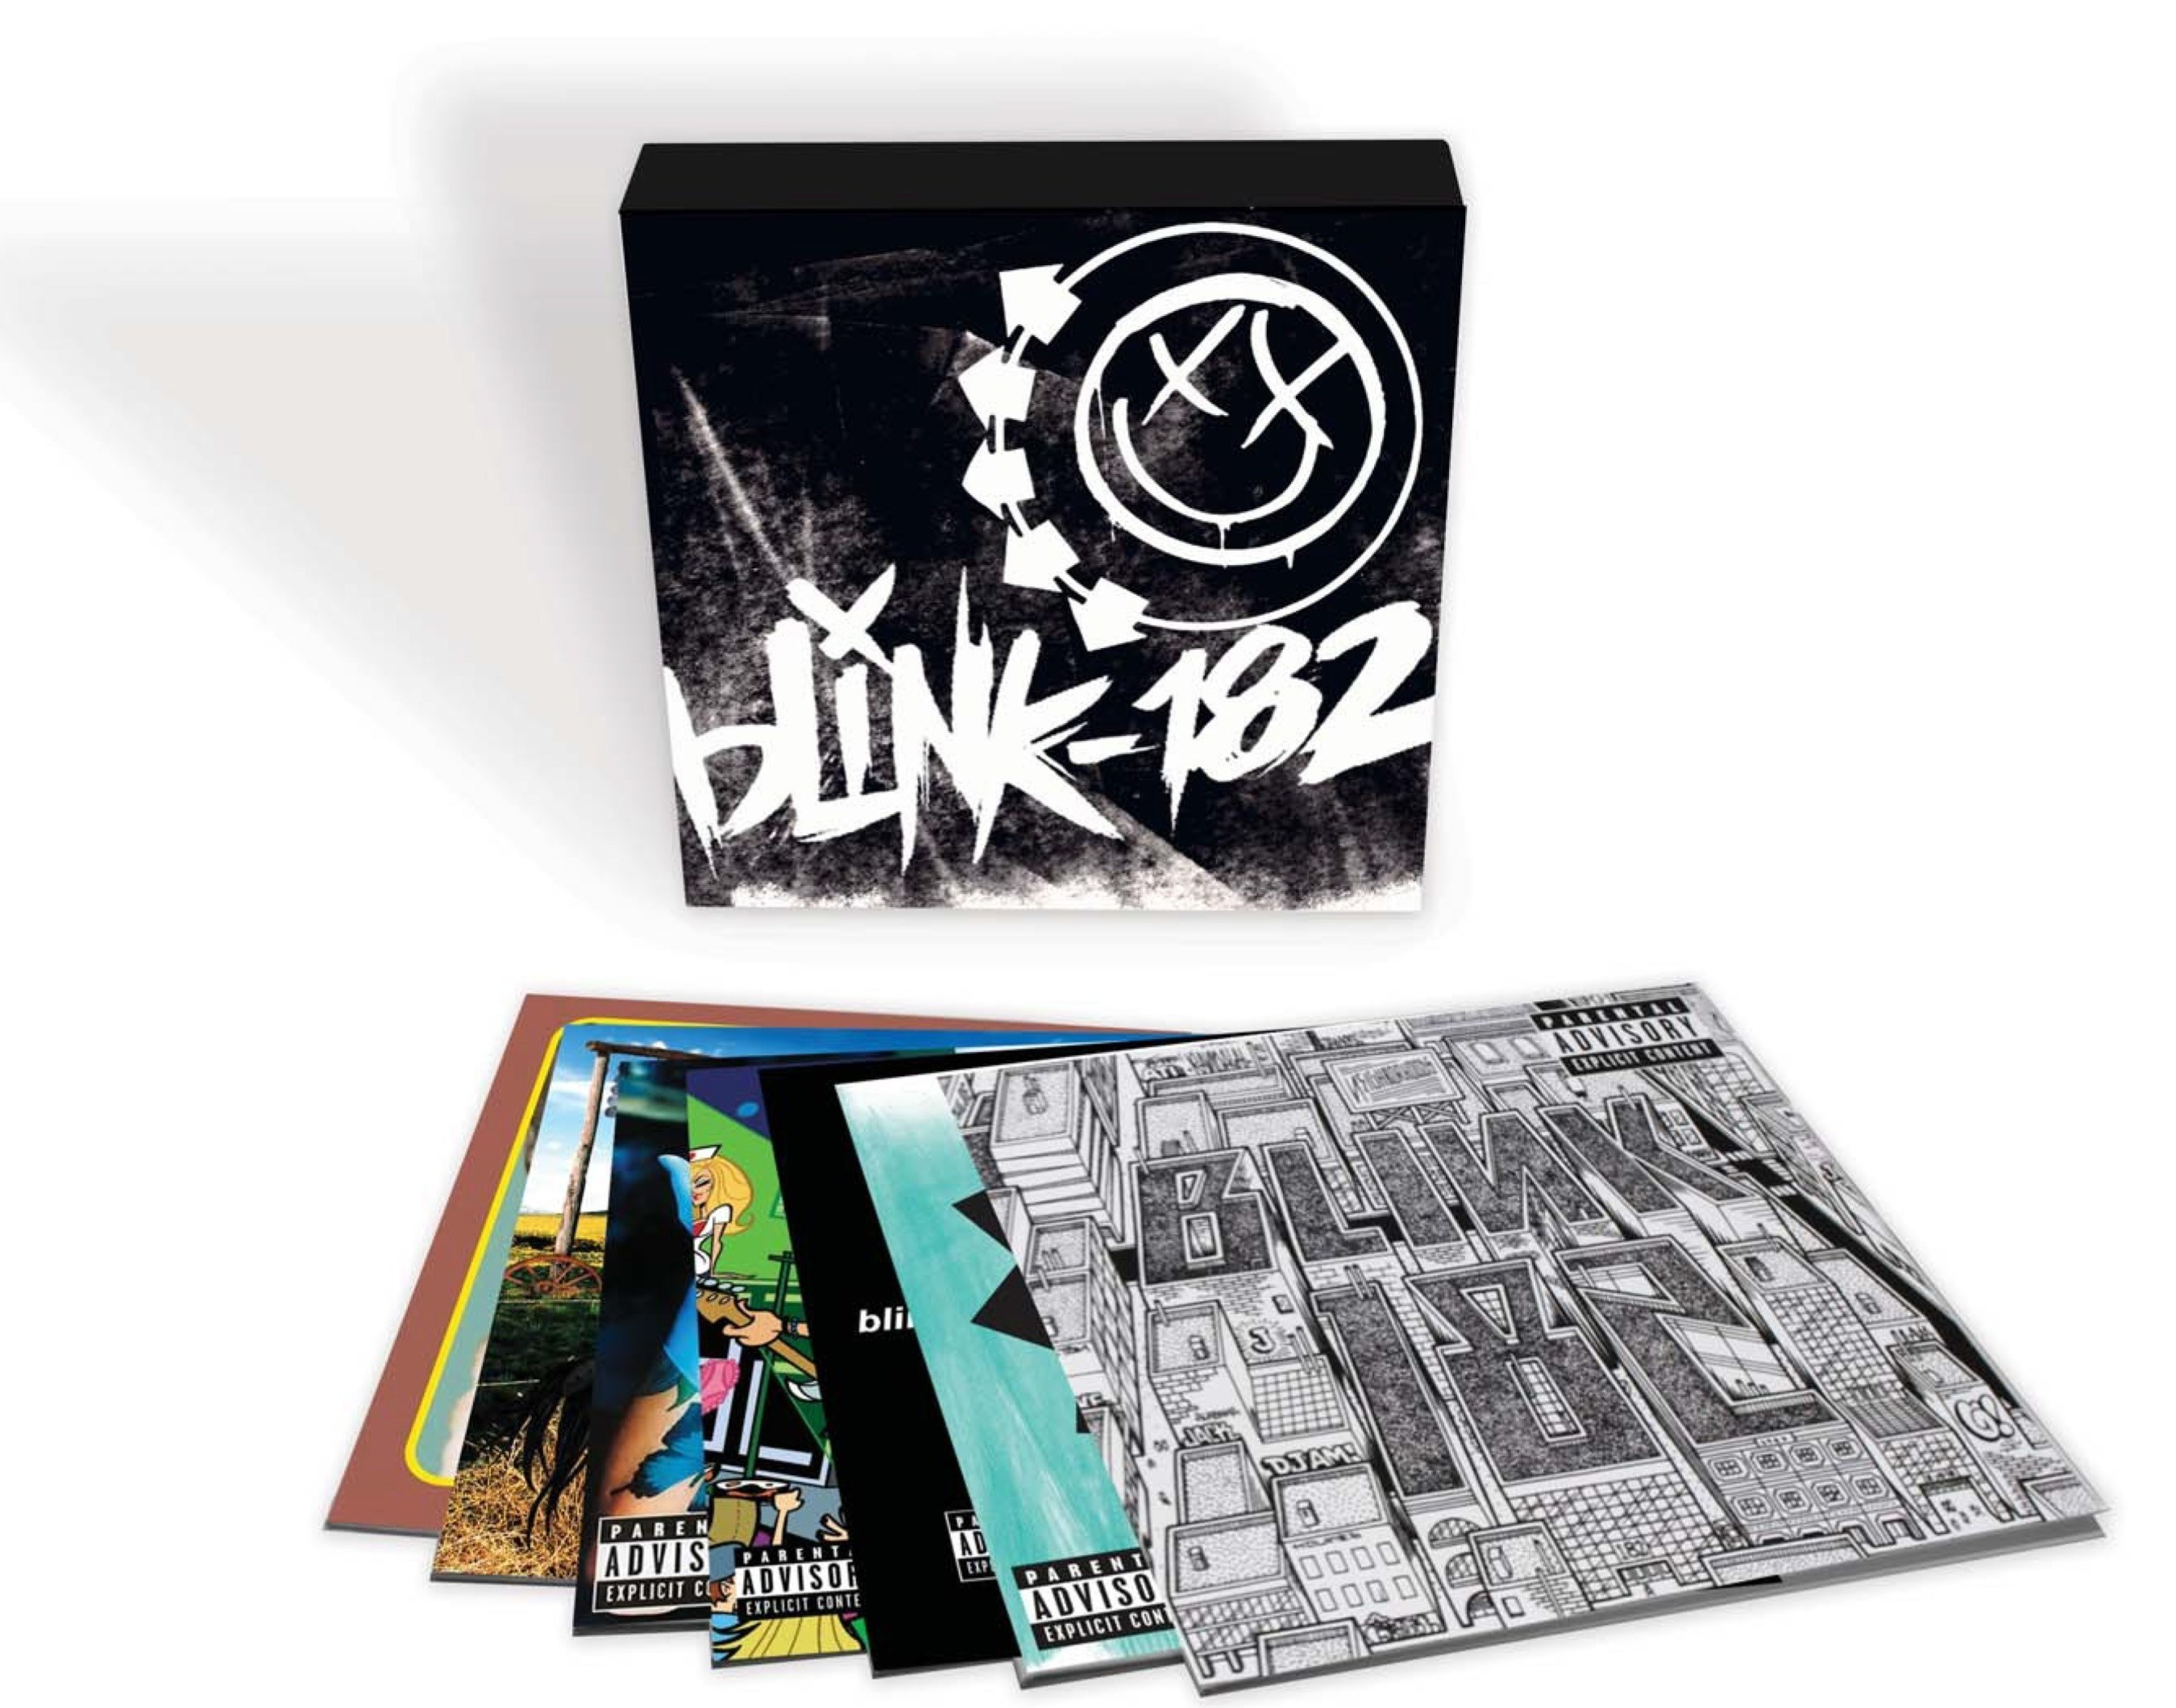 Geffen/UMe will bring Blink-182's entire Universal catalog together for the first time as a limited edition vinyl box set on October 7. The 10-LP collection will include their six studio albums on heavyweight 180-gram vinyl and consist of 1995's 'Cheshire Cat,' 1997's 'Dude Ranch,' 1999's 'Enema Of The State' and 2001's 'Take Off Your Pants And Jacket' on single LPs and 2003's 'blink-182,' 2011's 'Neighborhoods' and their riotous live record, 2000's 'The Mark, Tom & Travis Show: The Enema Strikes Back!'